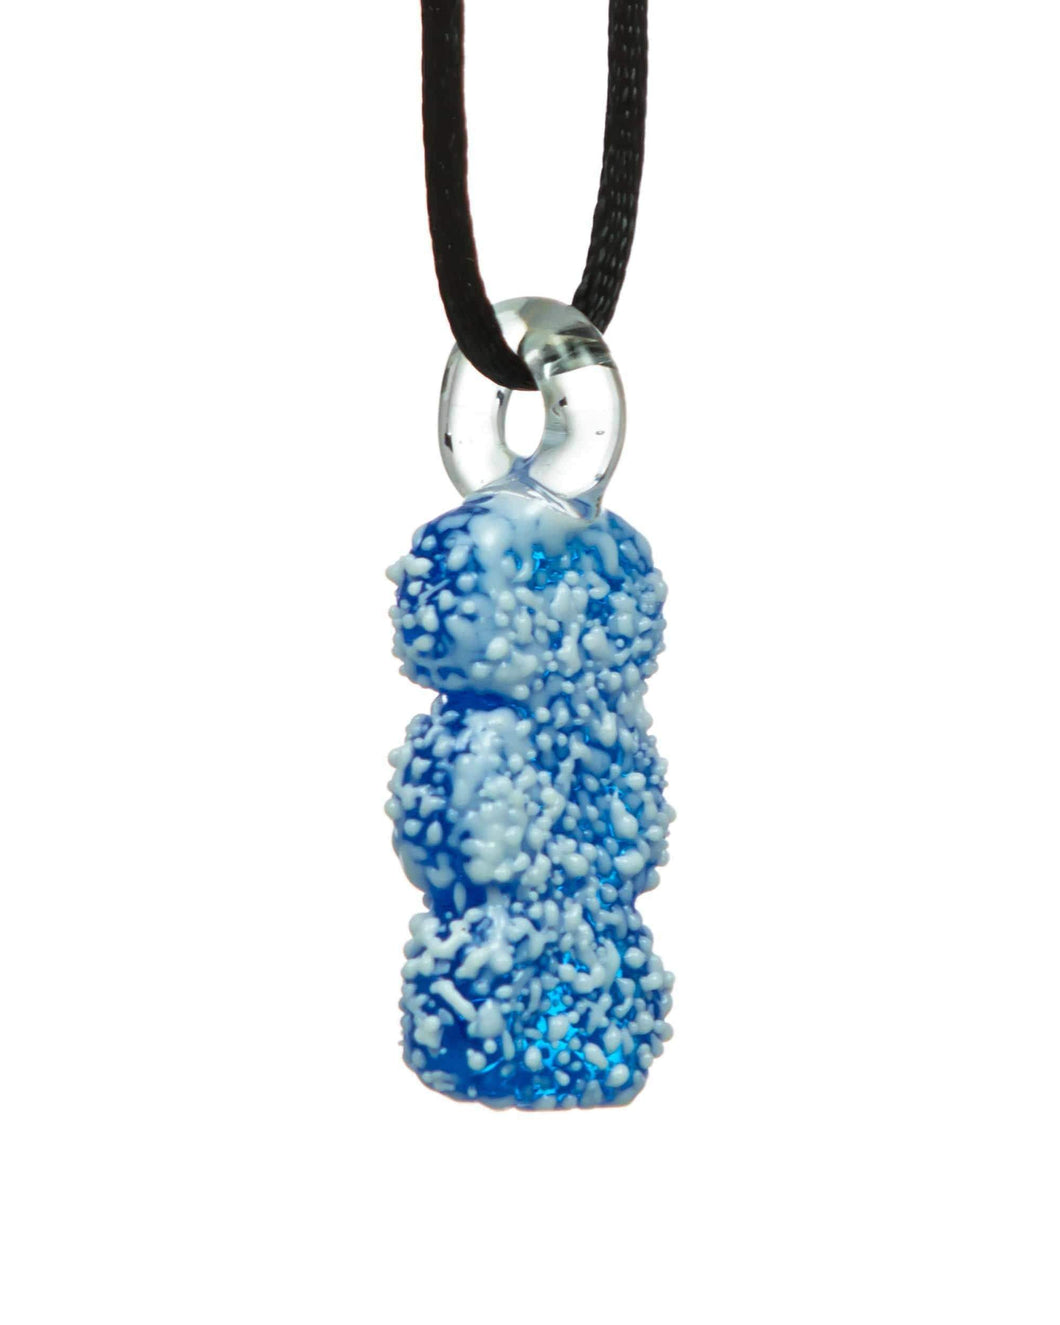 Sour Candy Pendant in blue